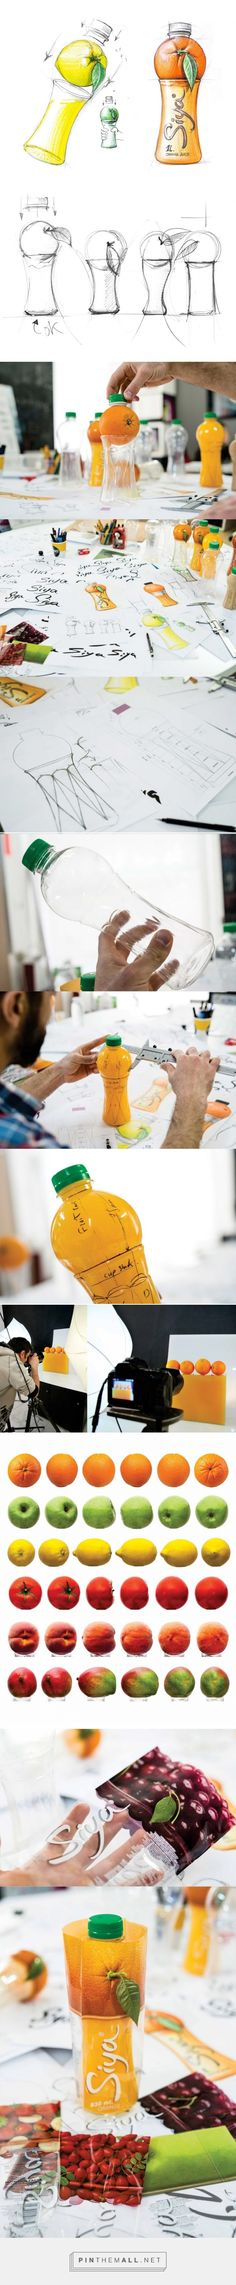 Siya Juice Packaging Development by Backbone Branding…